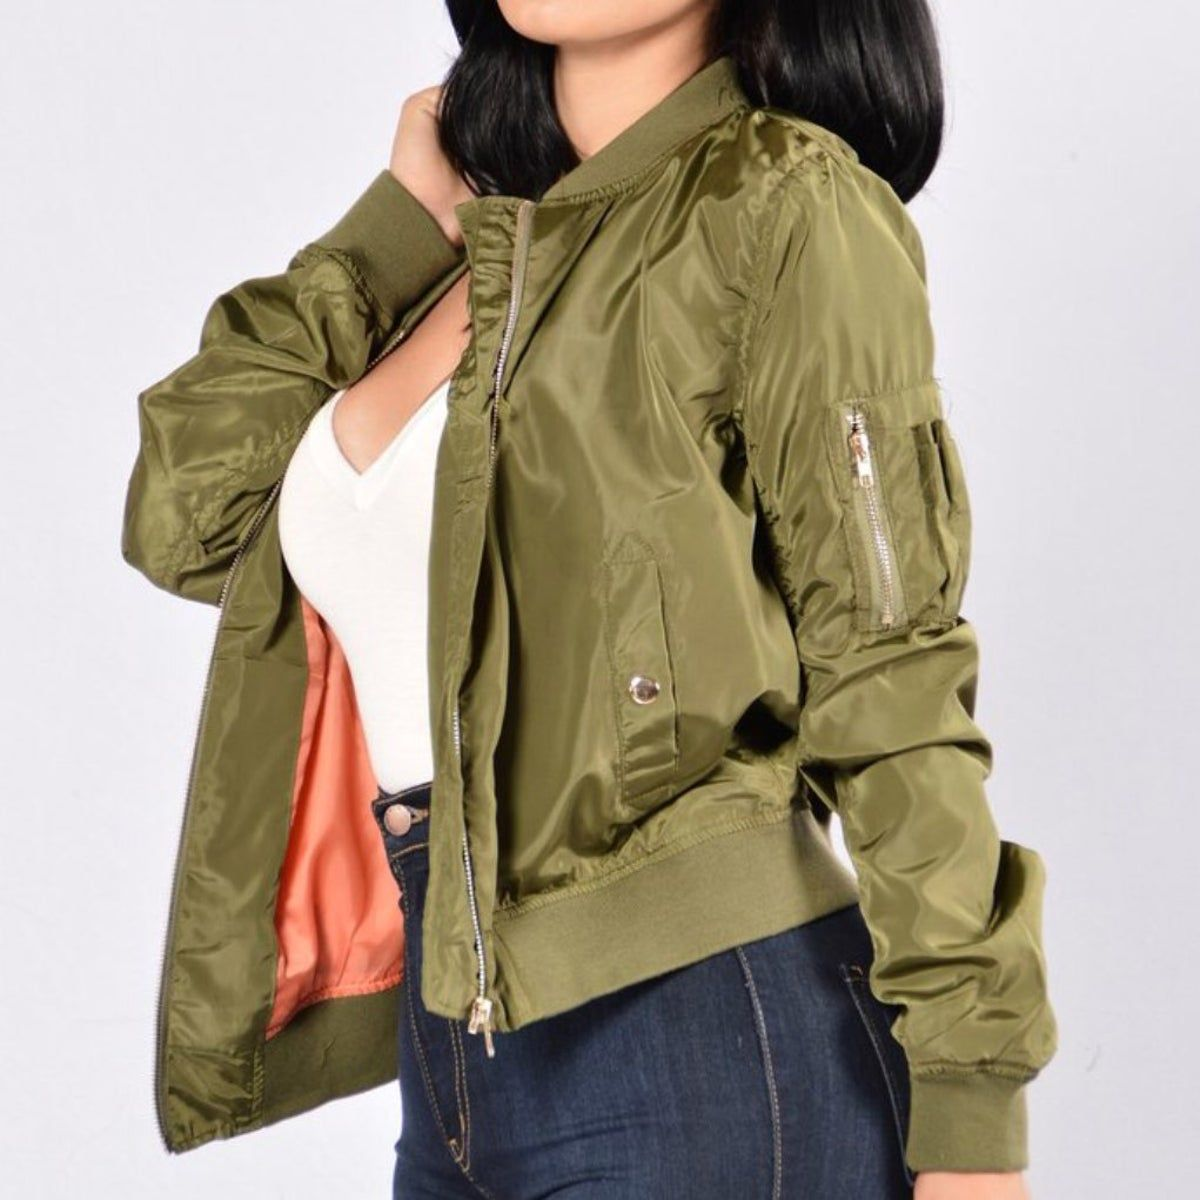 Pin By A On Ma1 In 2020 Olive Bomber Jacket Olive Bomber Jackets [ 1200 x 1200 Pixel ]